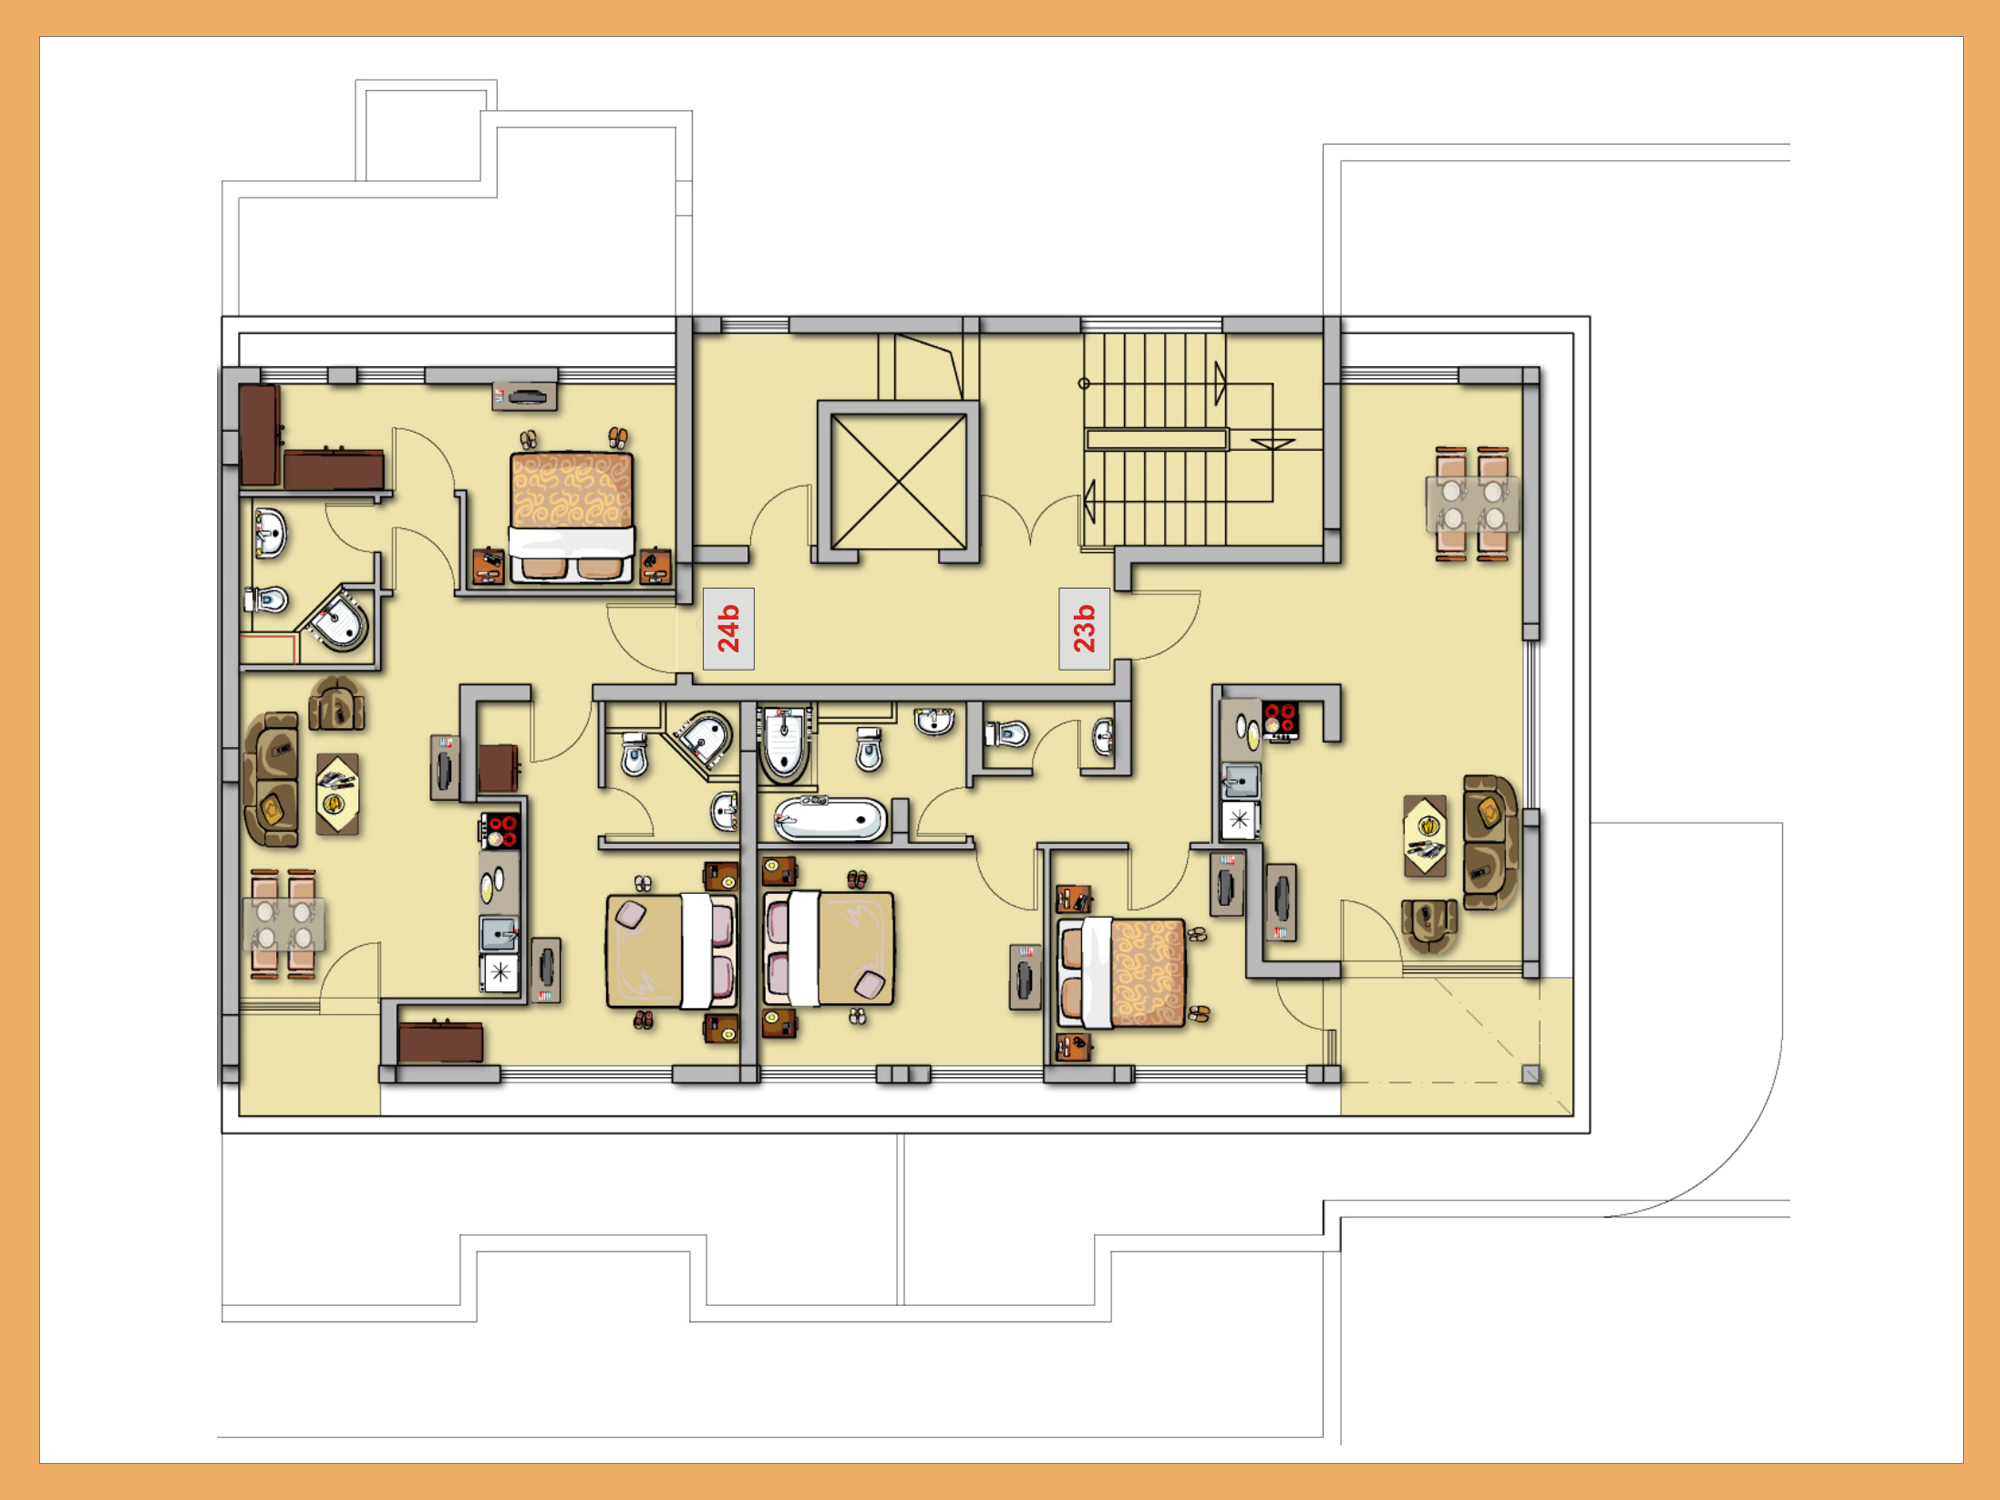 Drawn room kitchen room And Design Kitchen Home Living